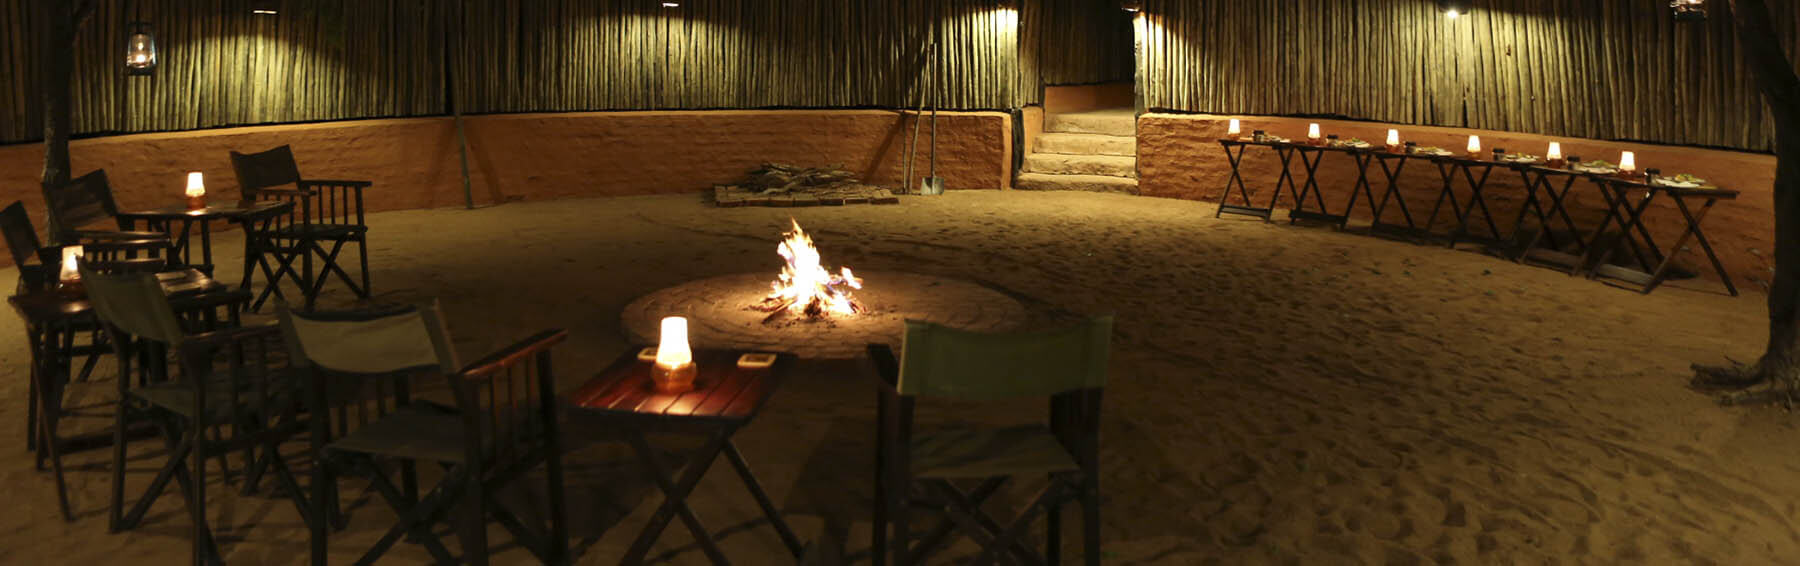 mopane_lodge_slider_3